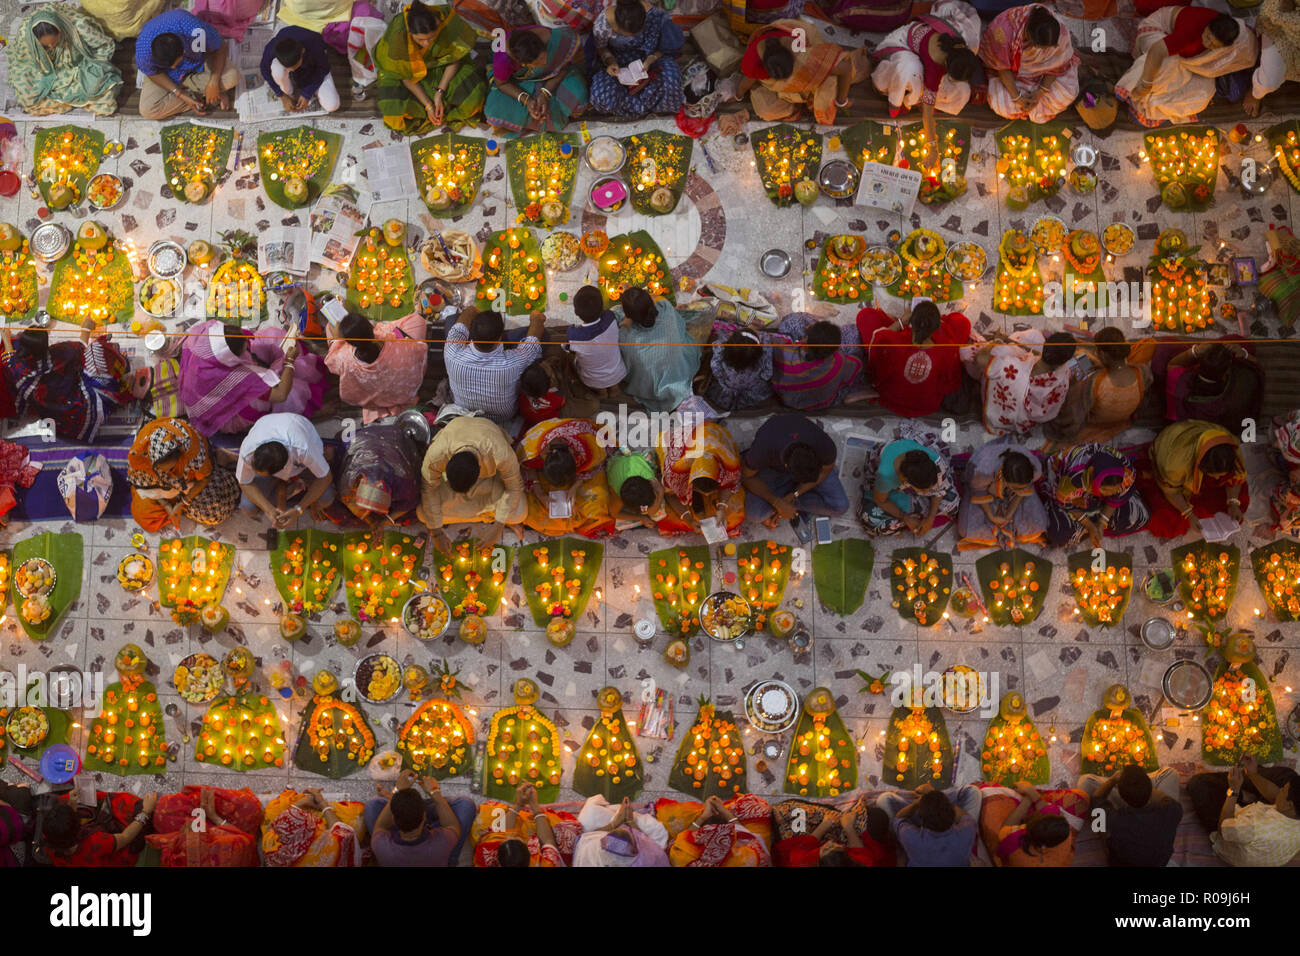 Dhaka, Bangladesh. 3rd Nov, 2018. DHAKA, BANGLADESH - NOVEMBER 03 : Hundreds of Hindu devotees sits with Prodip and prays to God in front of Shri Shri Lokanath Brahmachari Ashram temple during the Kartik Brati or Rakher Upobash in Dhaka, Bangladesh on November 03, 2018.Every year thousands of Hindu devotees gather in front of Shri Shri Lokenath Brahmachari Ashram temple for the Kartik Brati or Rakher Upobash religious festival in Dhaka, Bangladesh. Faithful sit in front of candles light ( named locally as Prodip ) and absorb in prayer. Credit: ZUMA Press, Inc./Alamy Live News - Stock Image